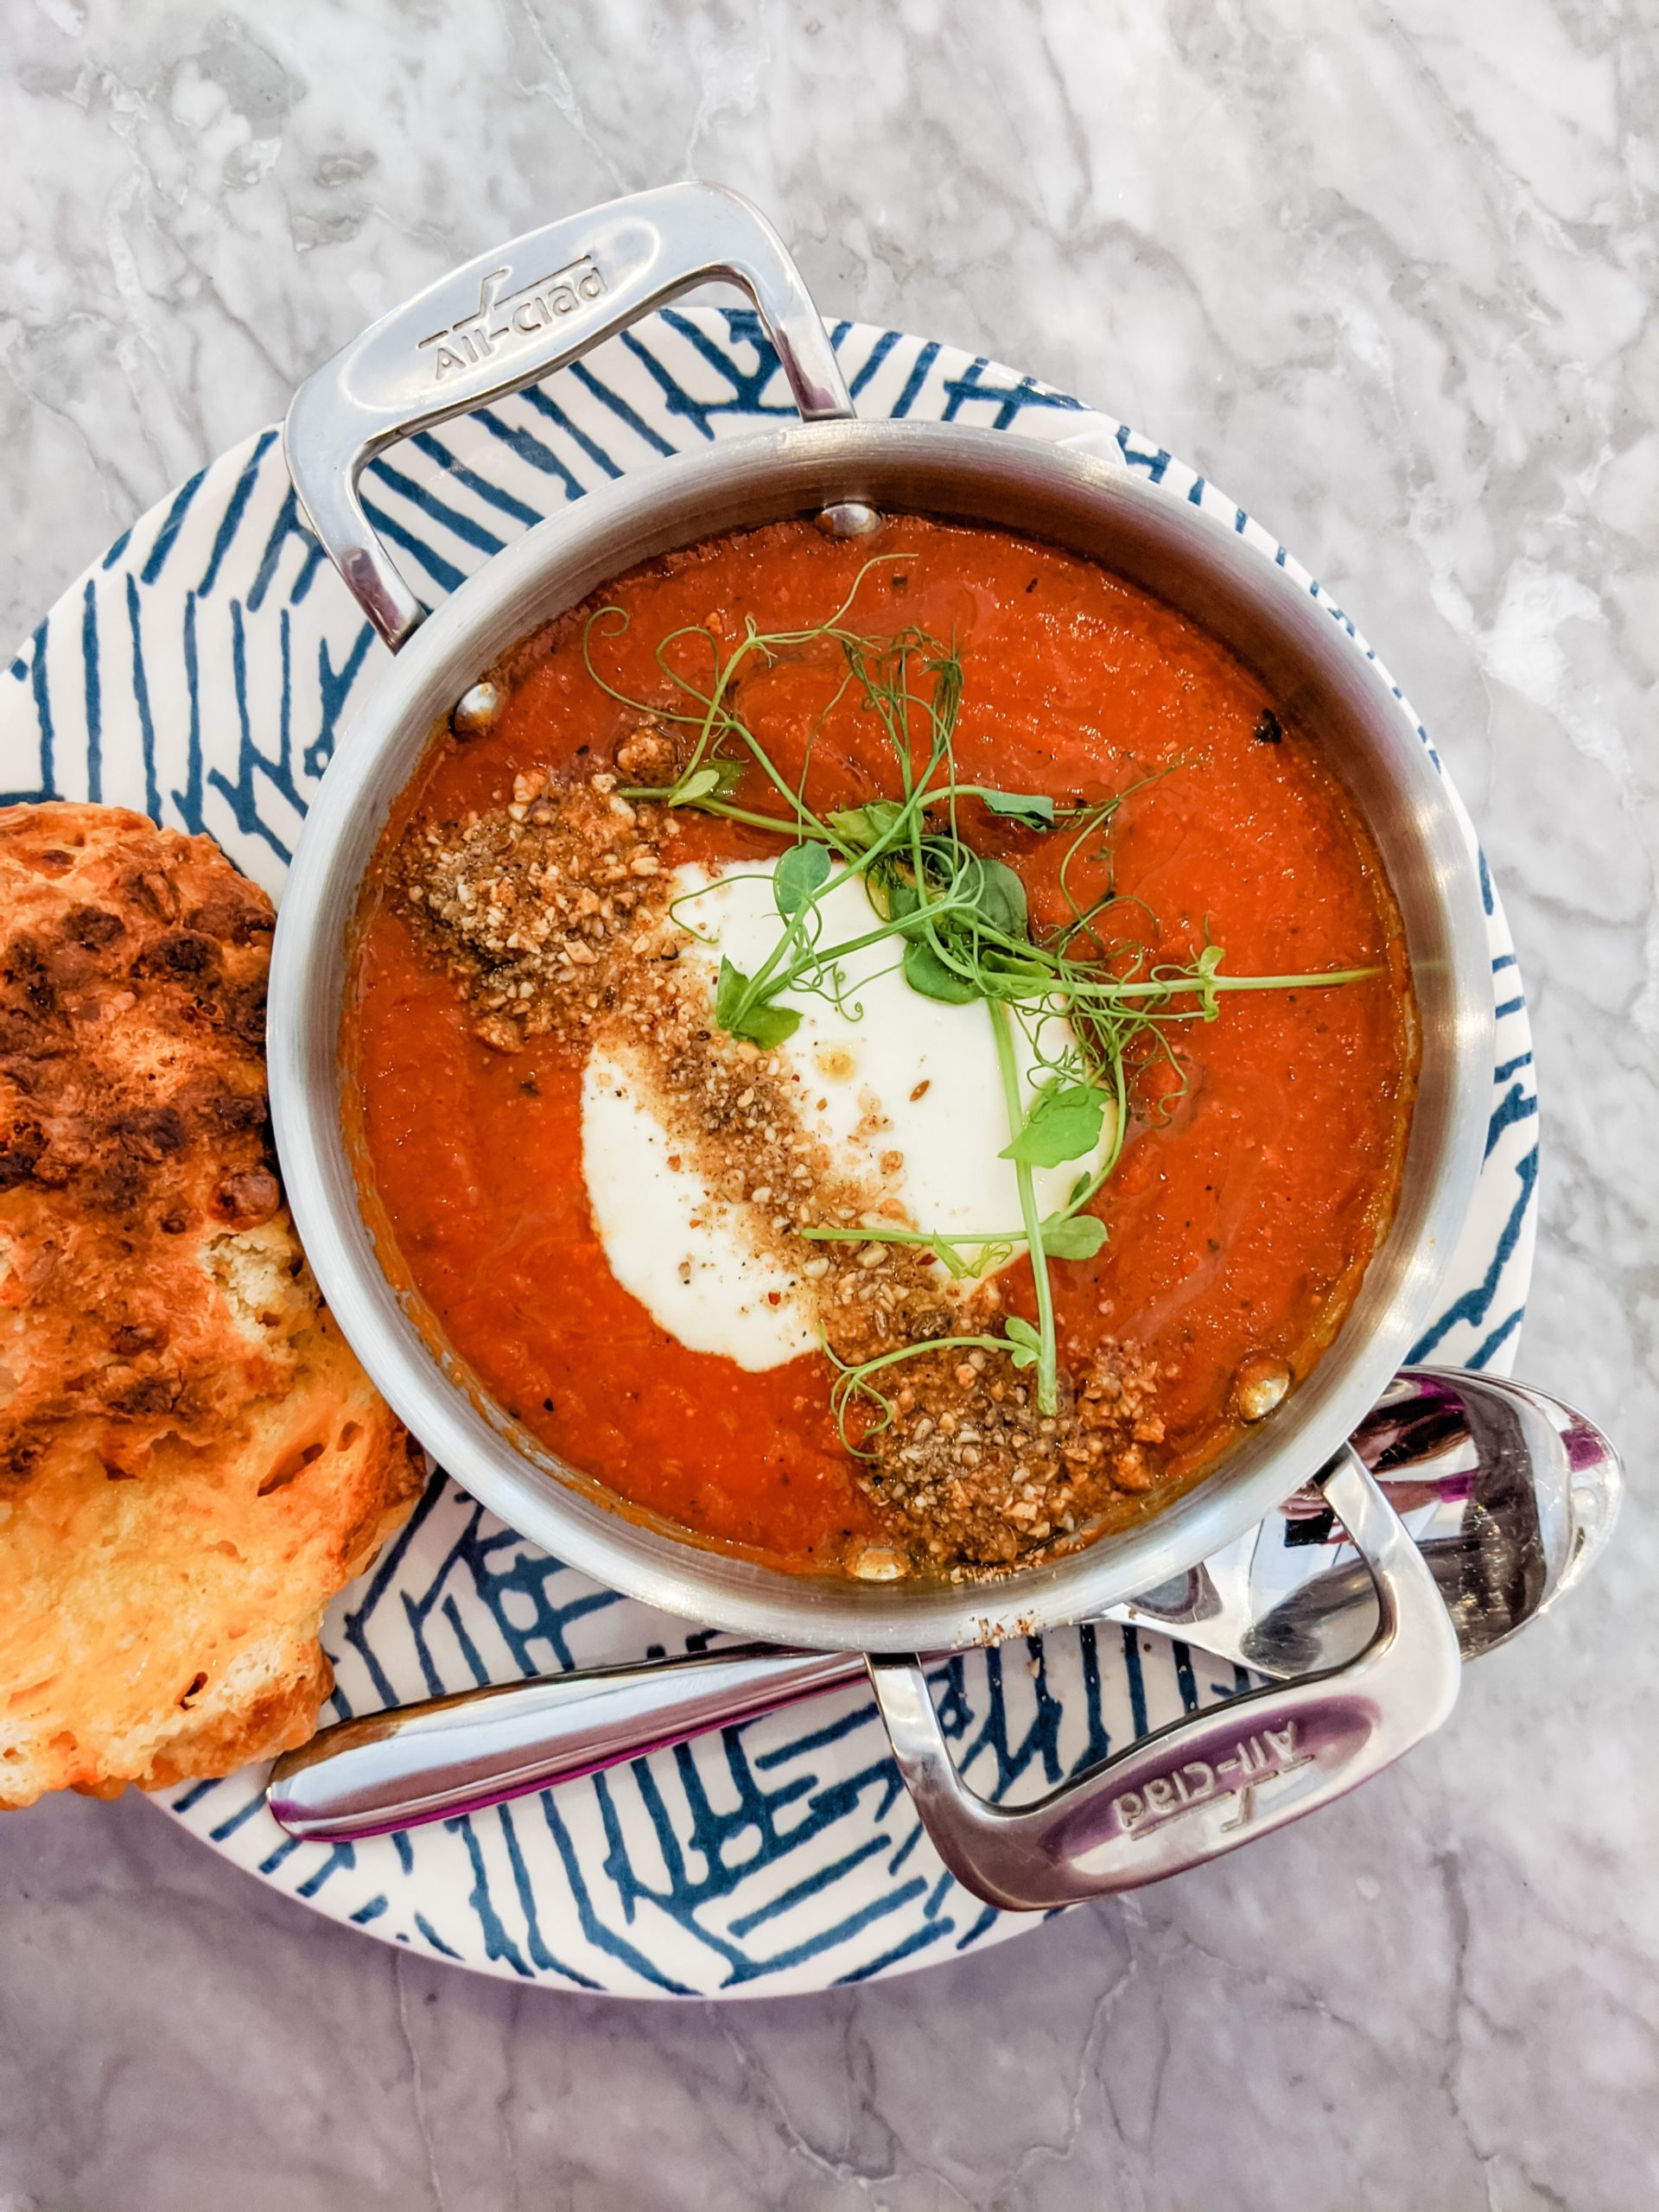 Tomato Soup As A Diet Food Option